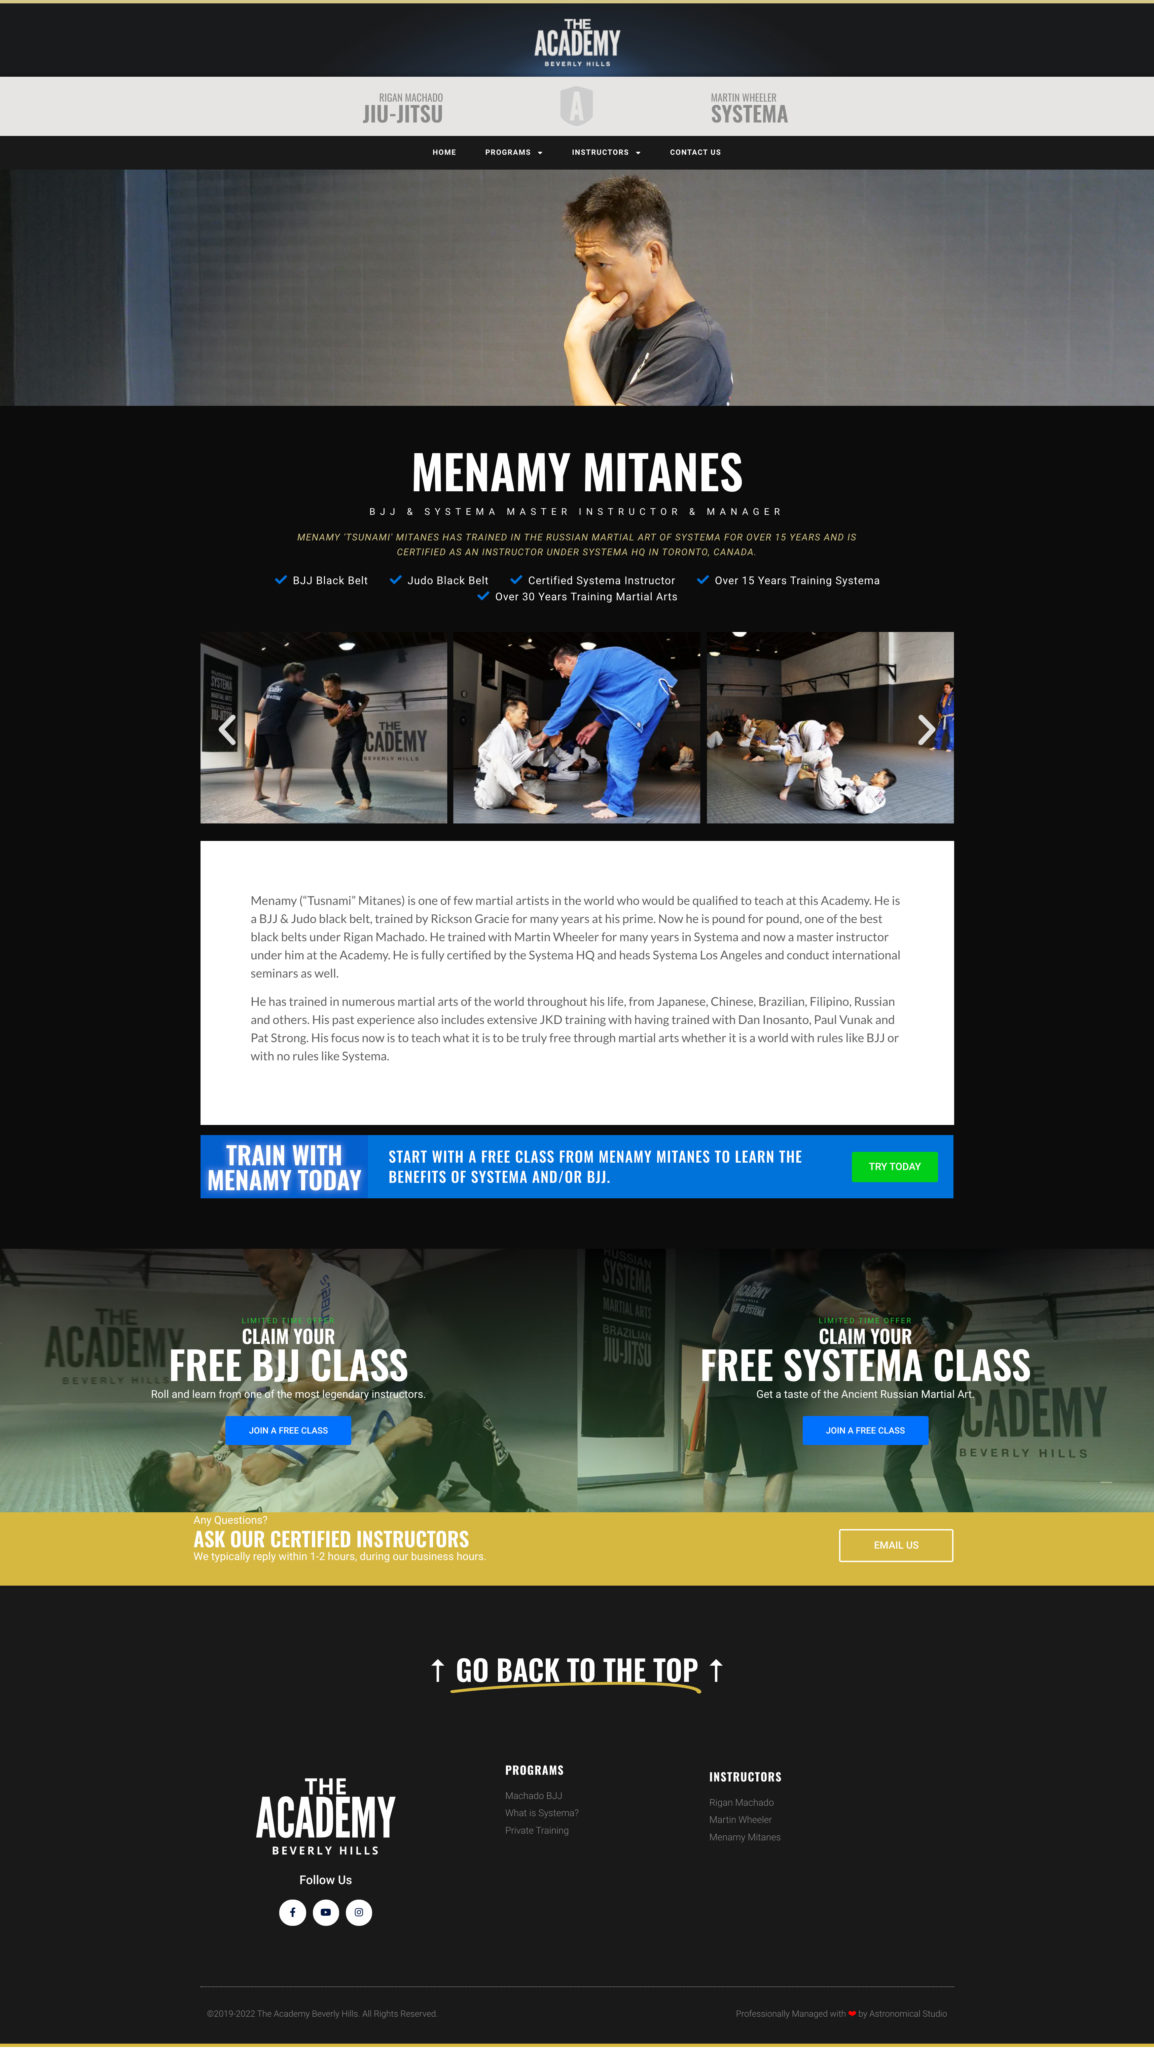 The-Academy-Beverly-Hills-Instructors-Website-Design-By-Astronomical-Studio